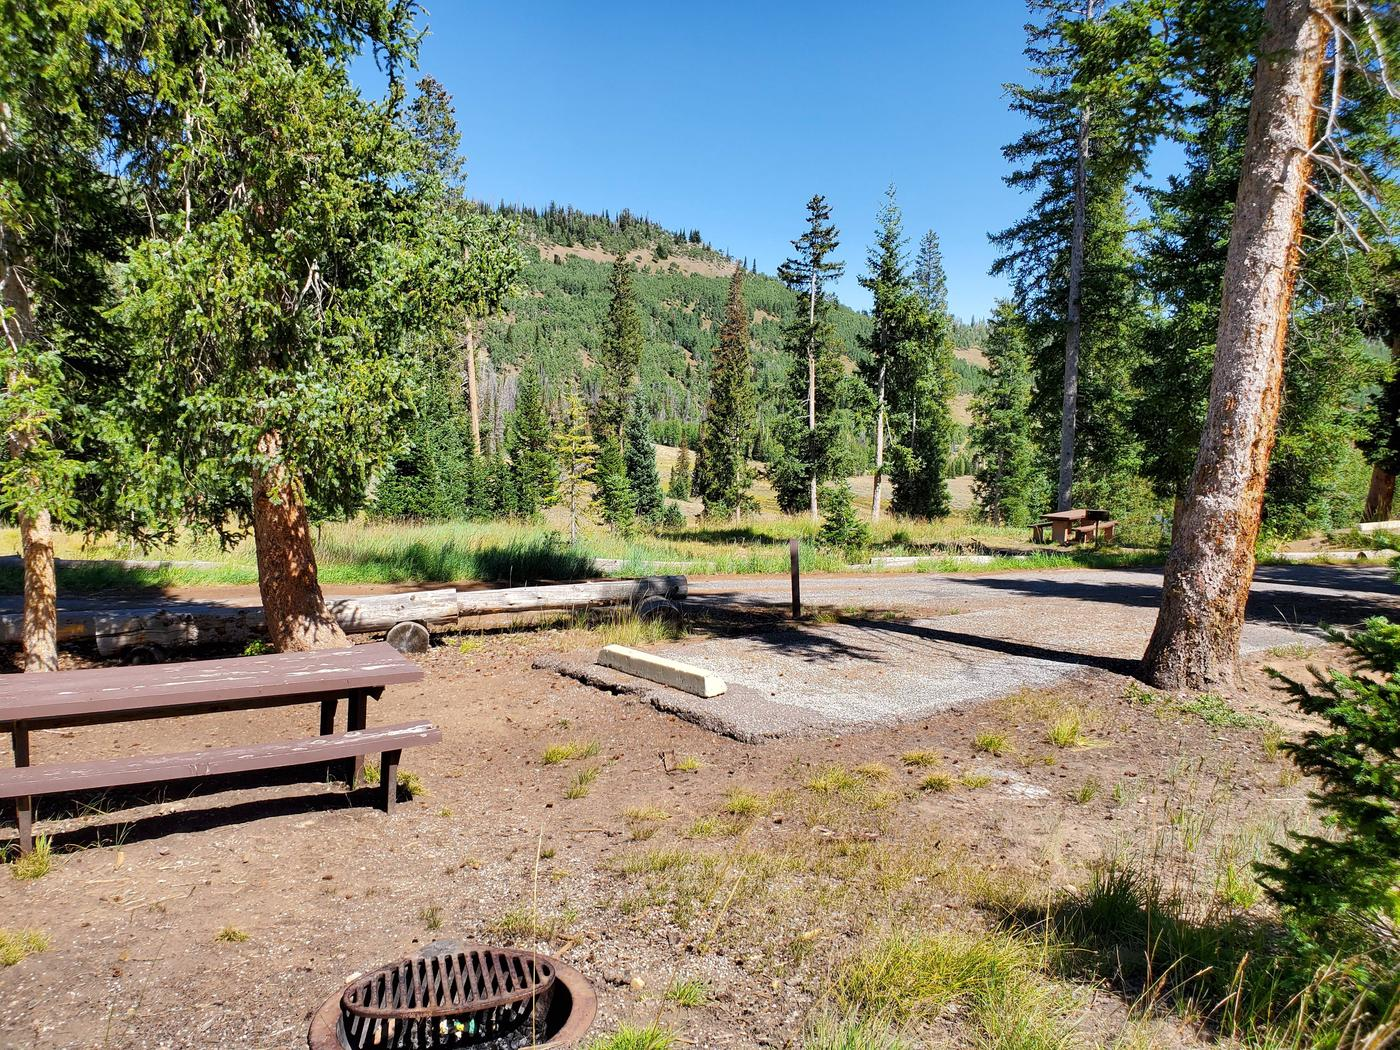 Flat Canyon Campground Site #10cFlat Canyon Campground Site #10